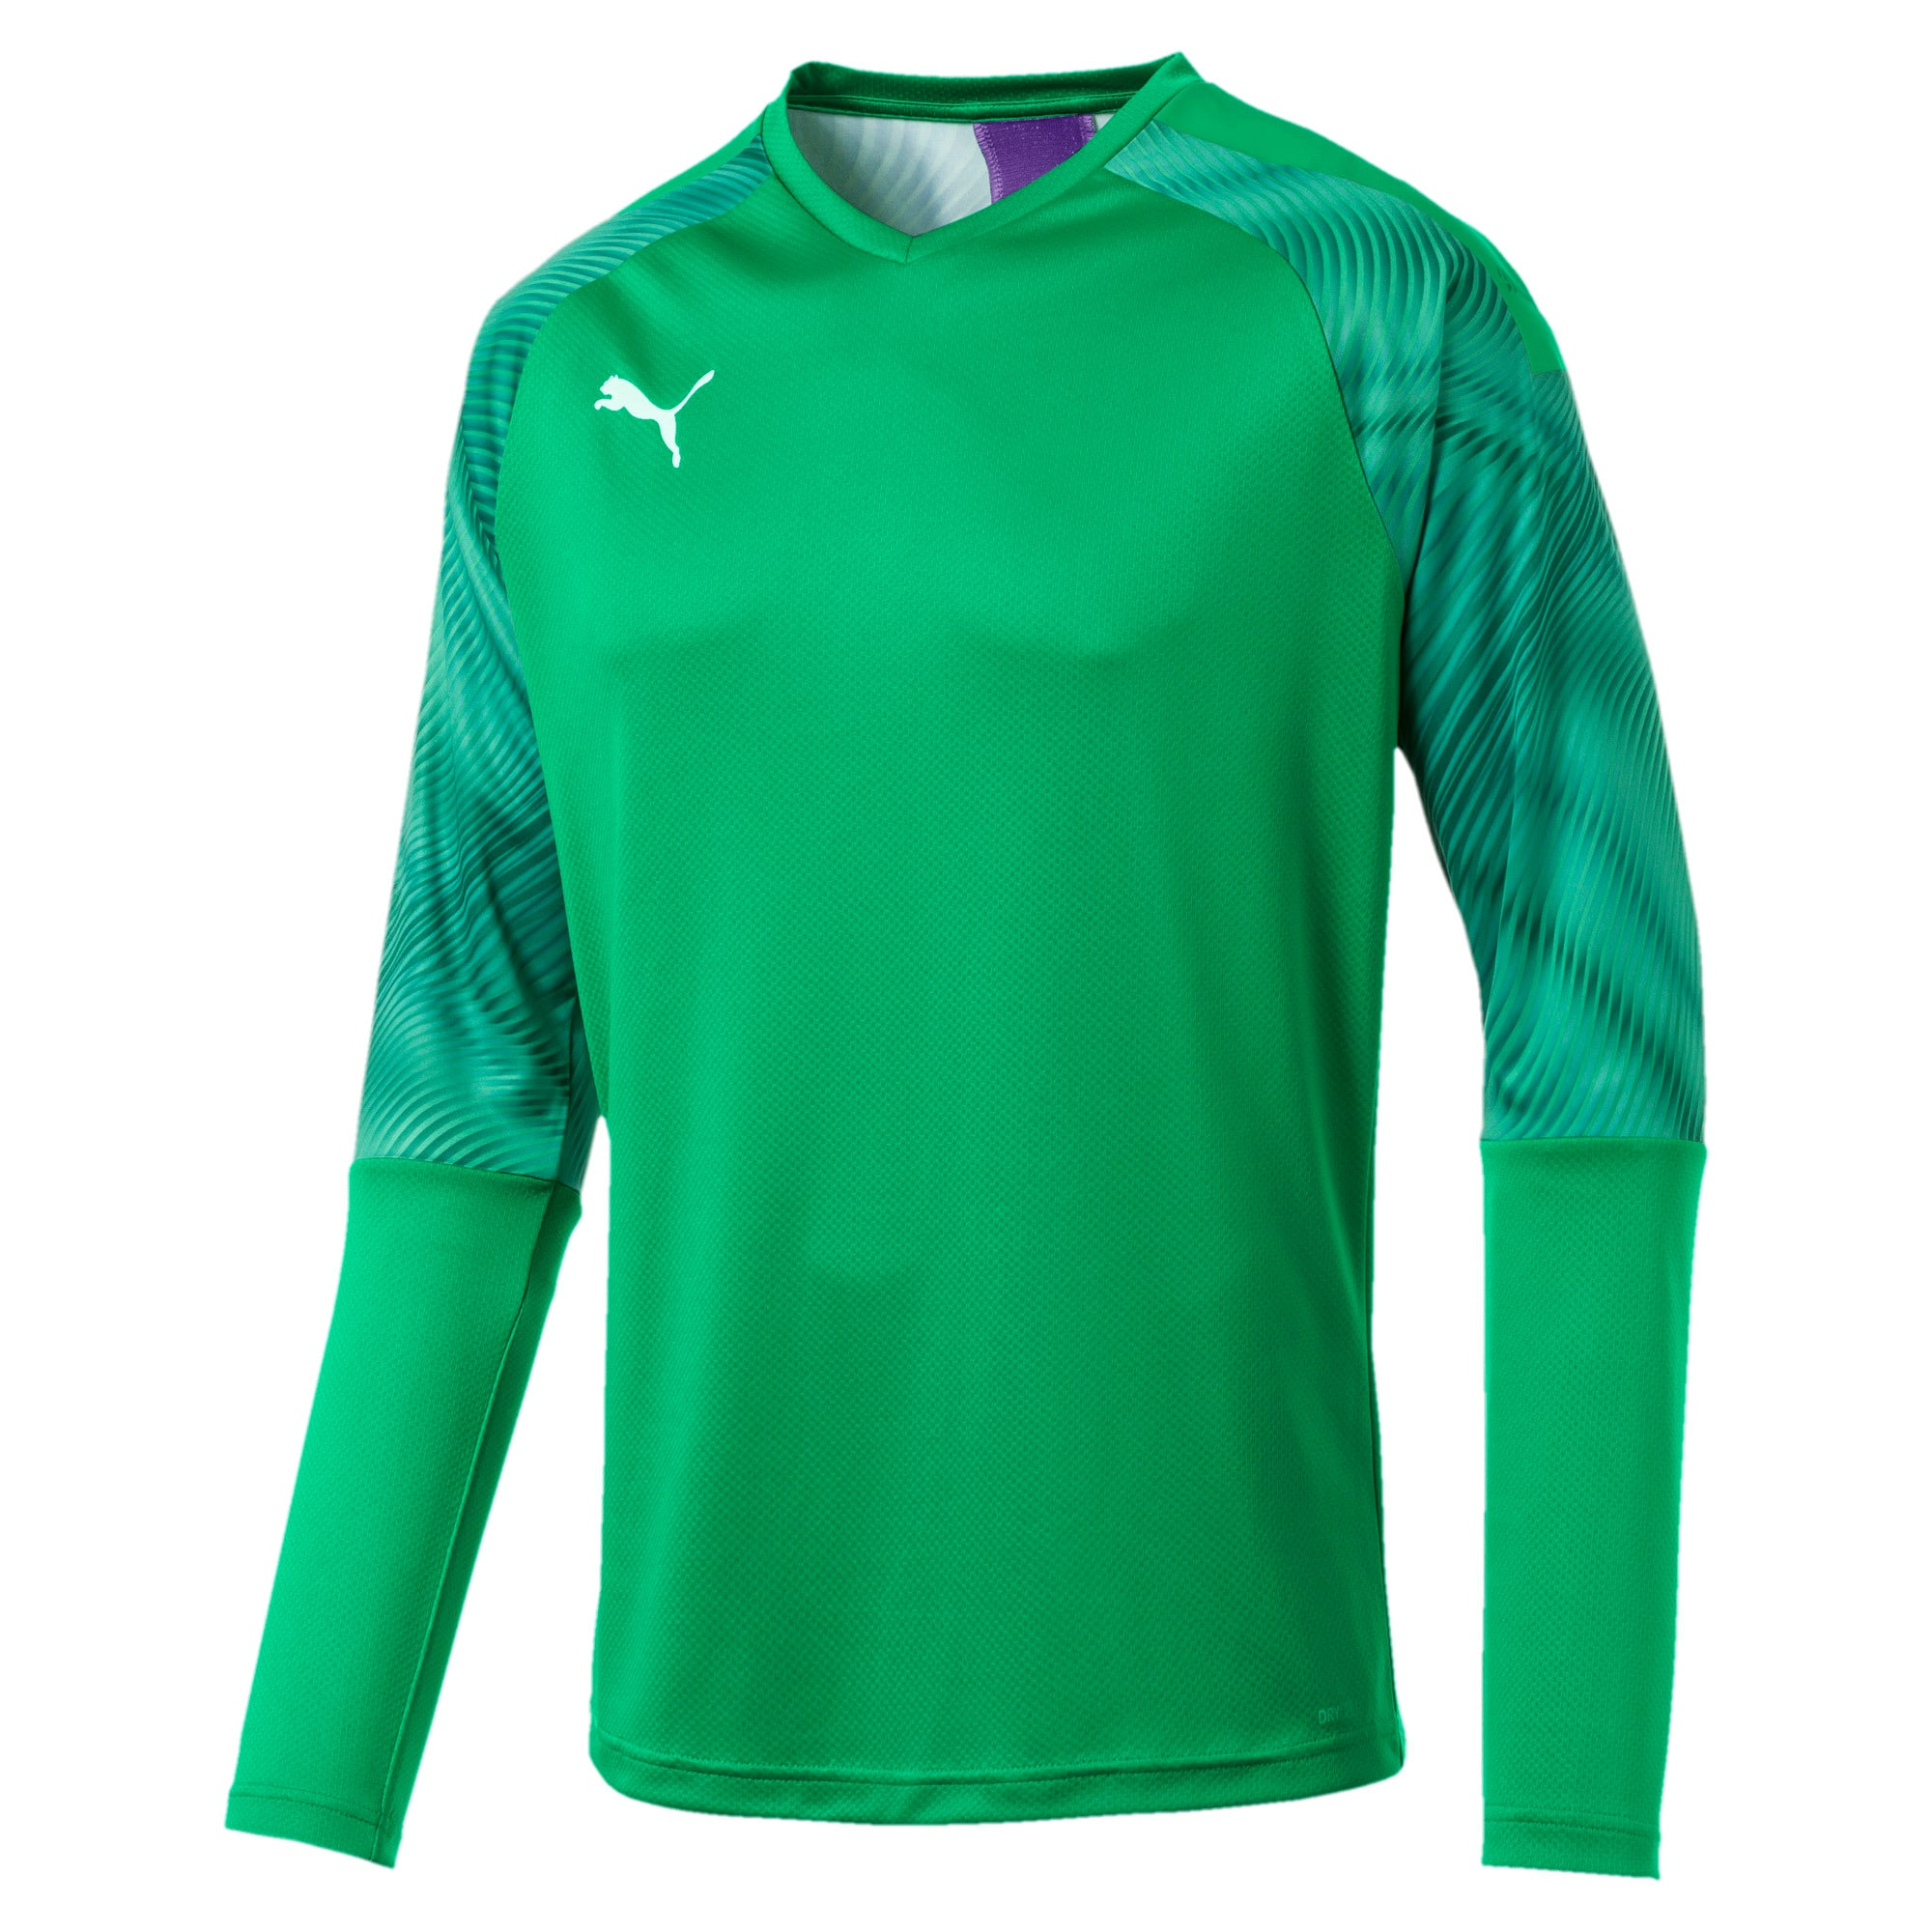 Thumbnail 4 of CUP Long Sleeve Men's Goalkeeper Jersey, Bright Green-Prism Violet, medium